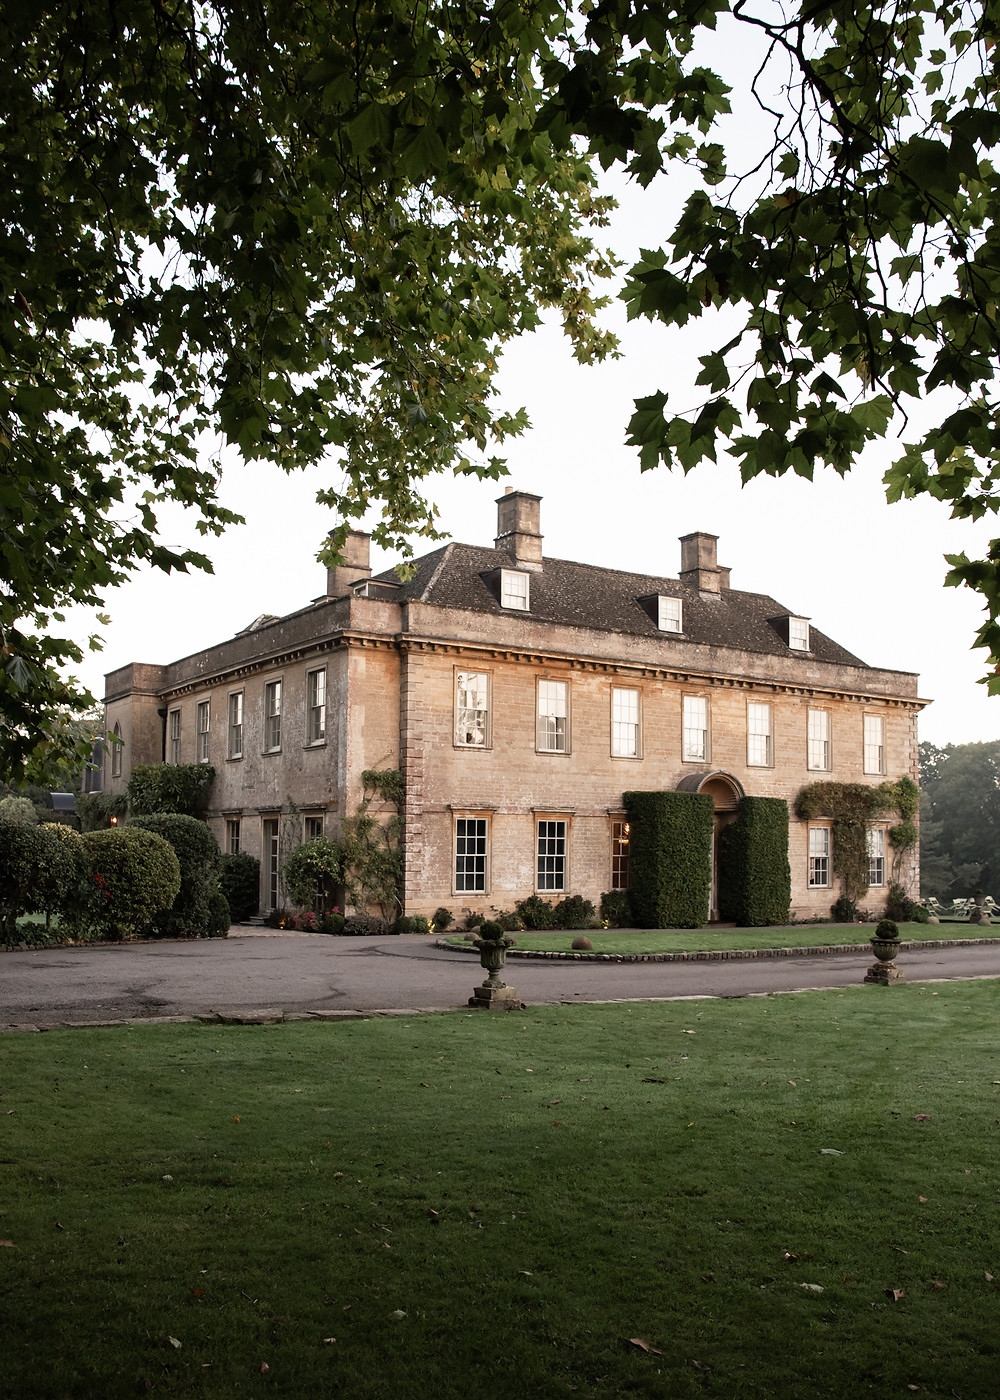 Babington House, Frome, Somerset - a Soho House hotel